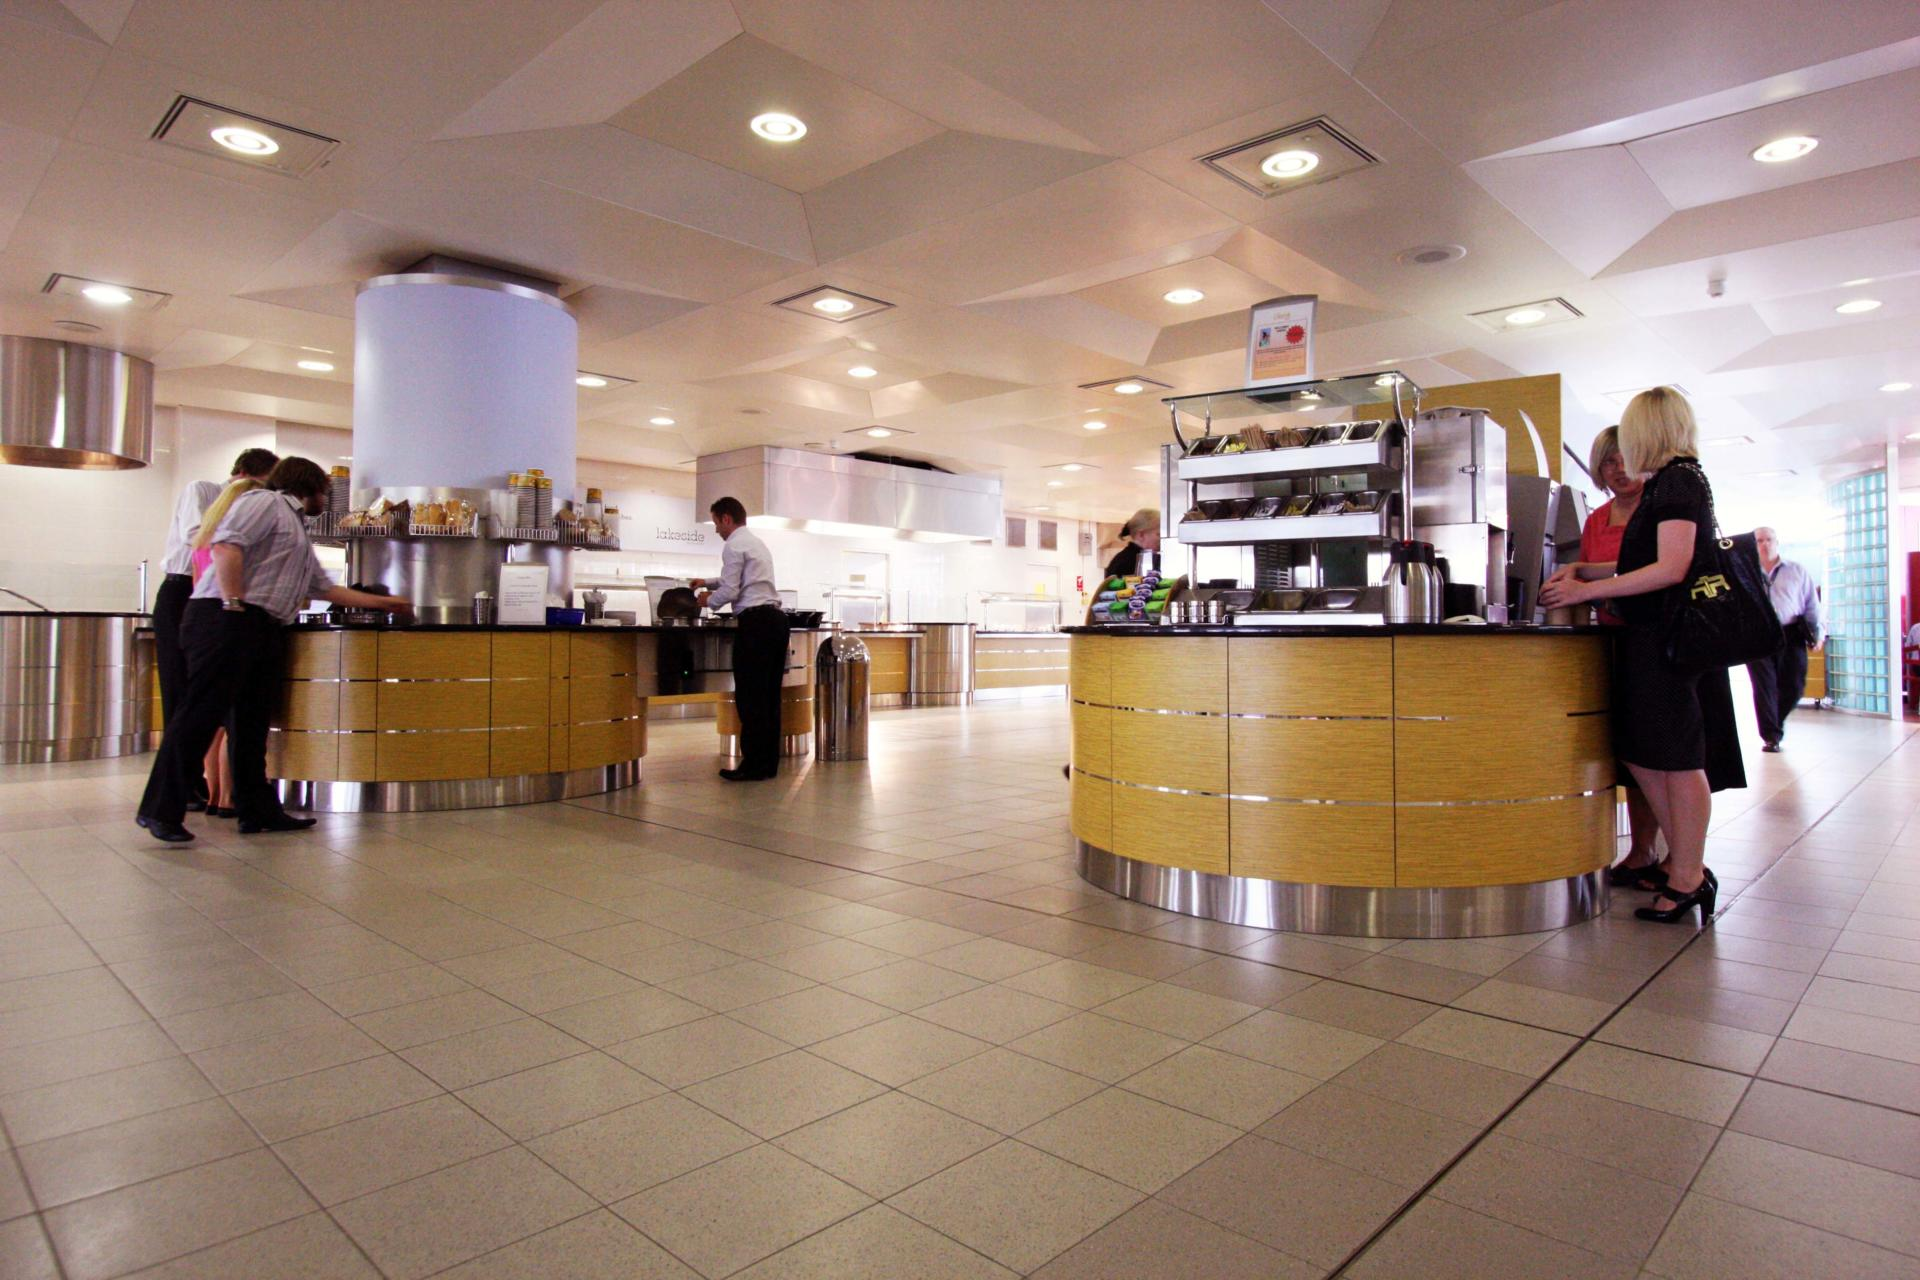 nationwide_swindon_staff restaurant_servery (21)